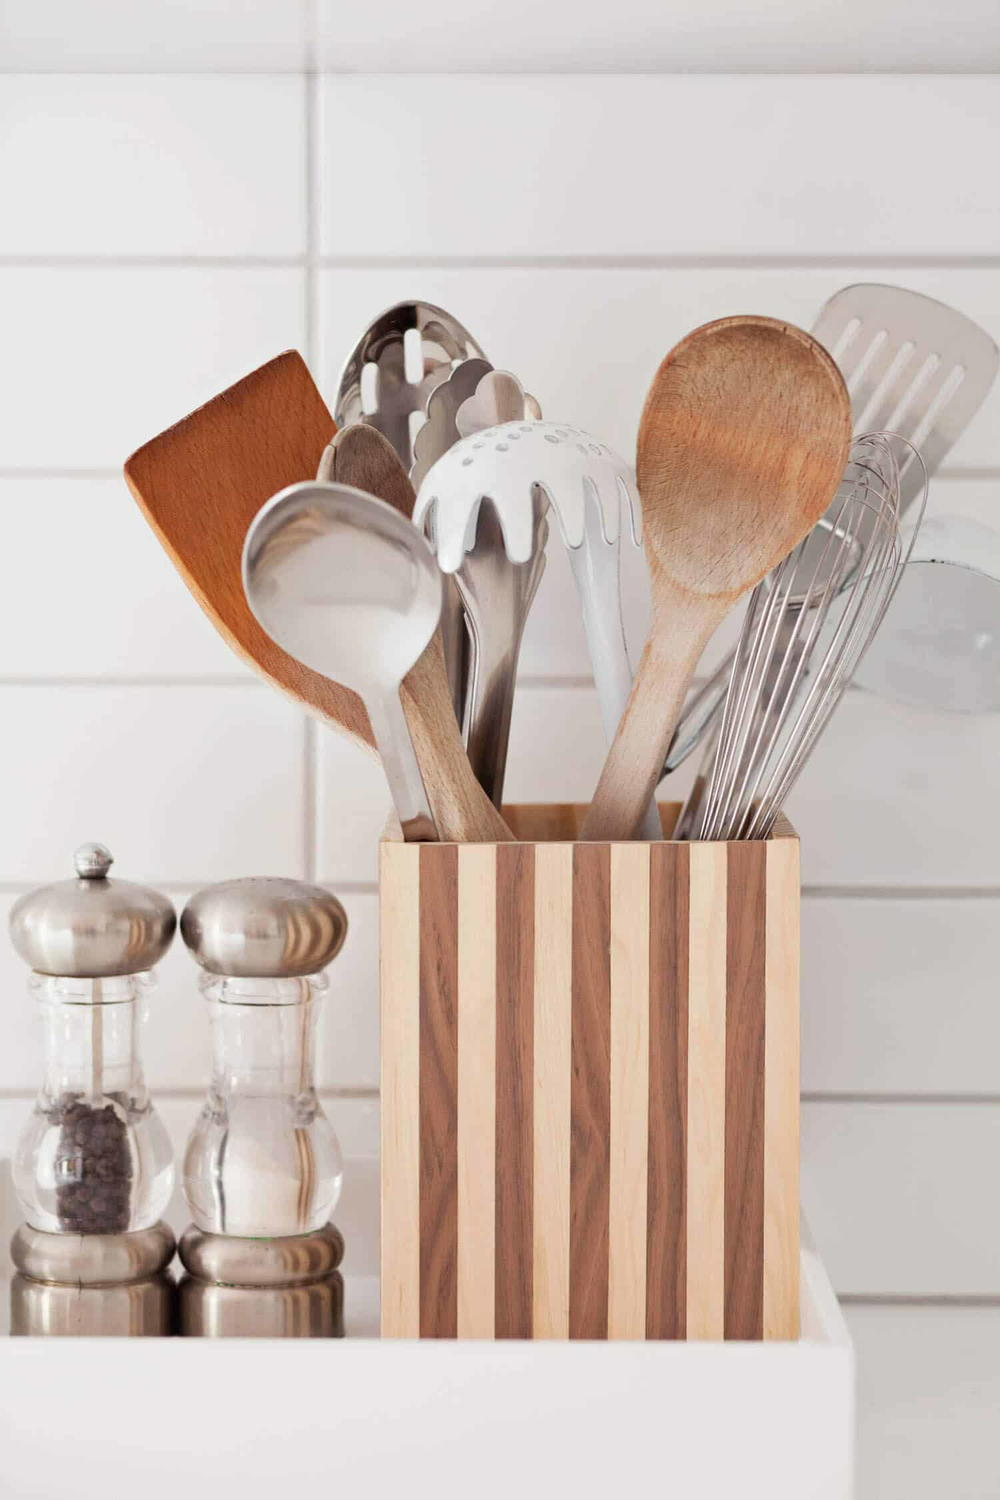 diy kitchen utensil holder | cheapthriftyliving